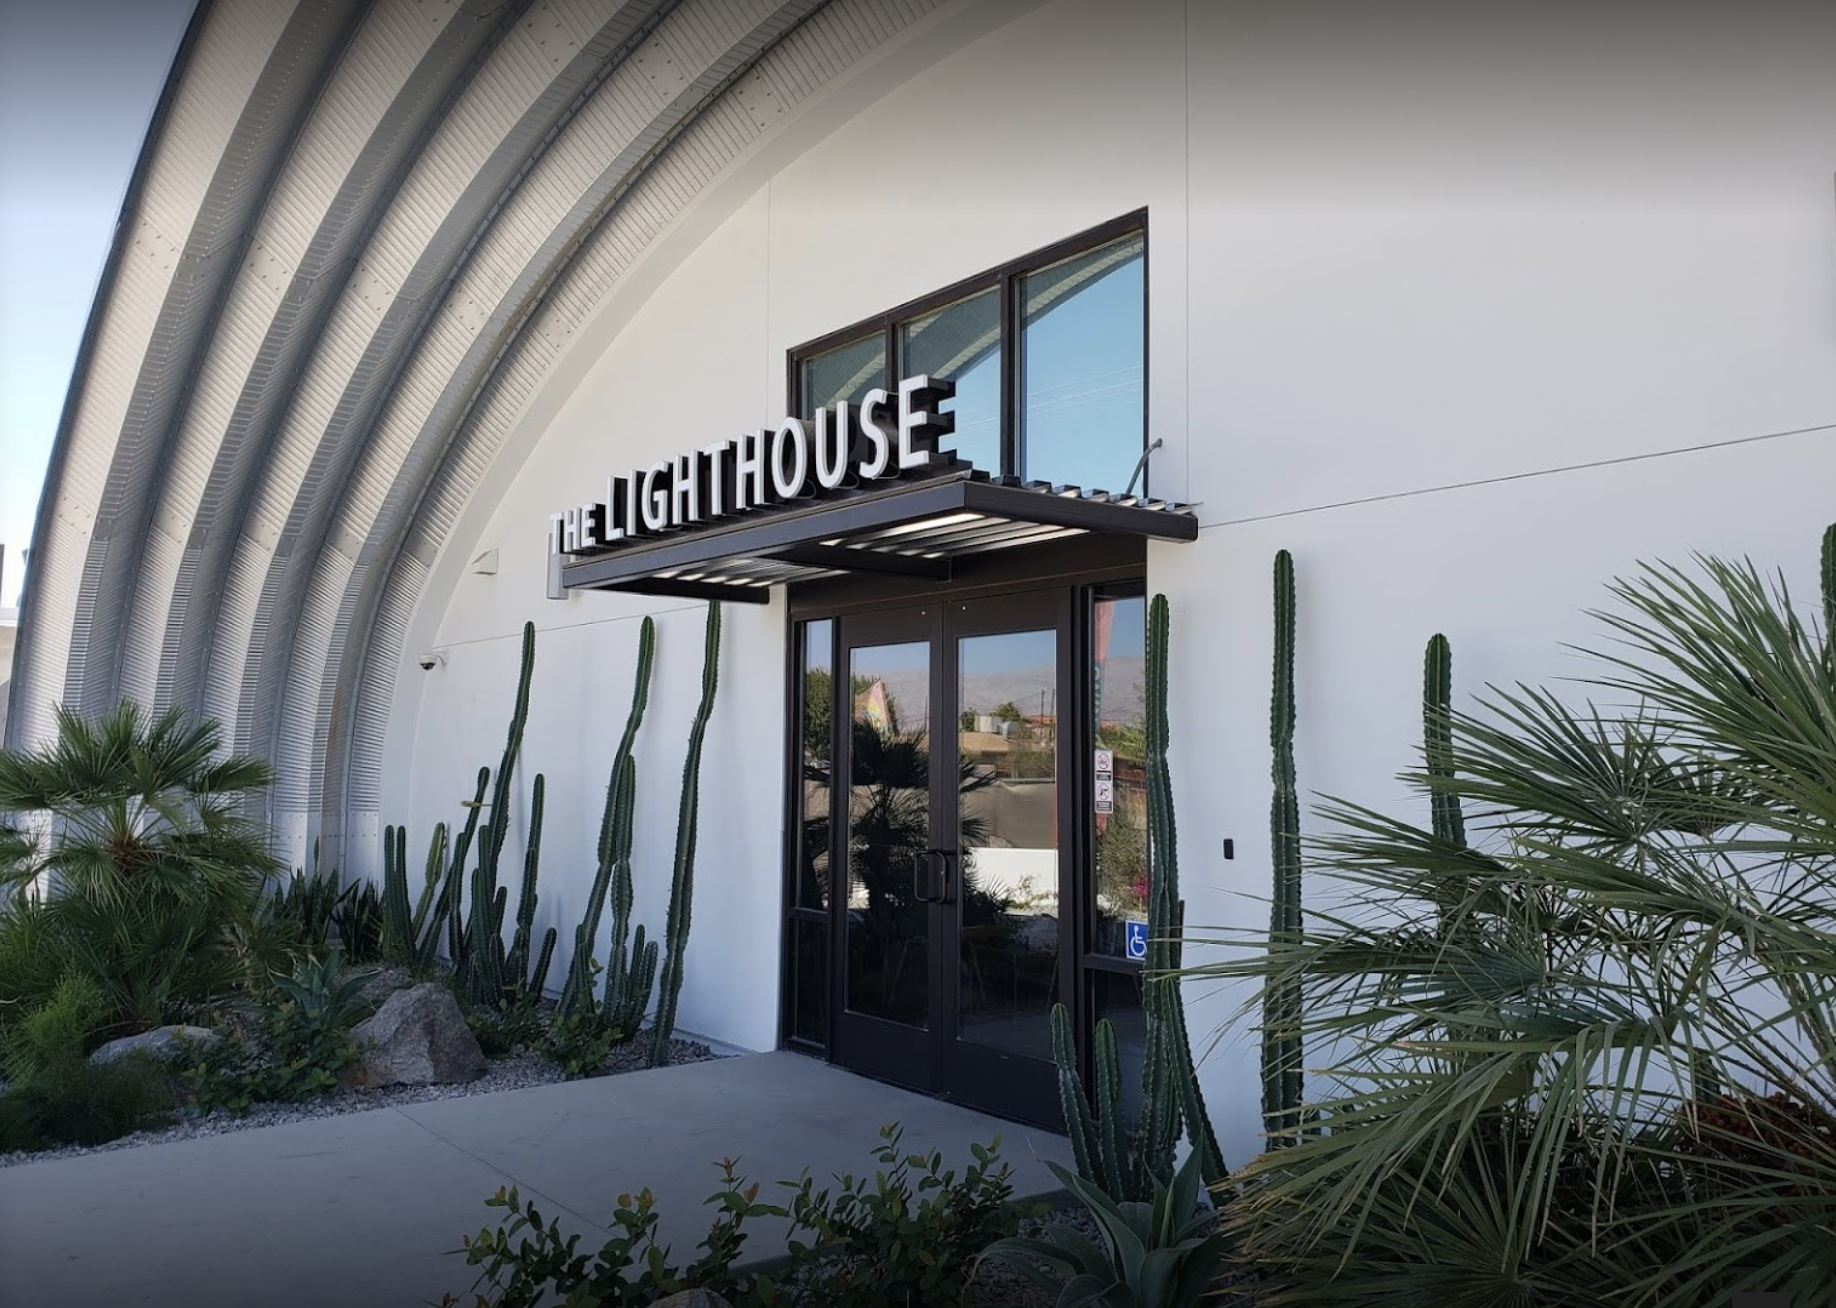 The Lighthouse Dispensary Coachella Valley